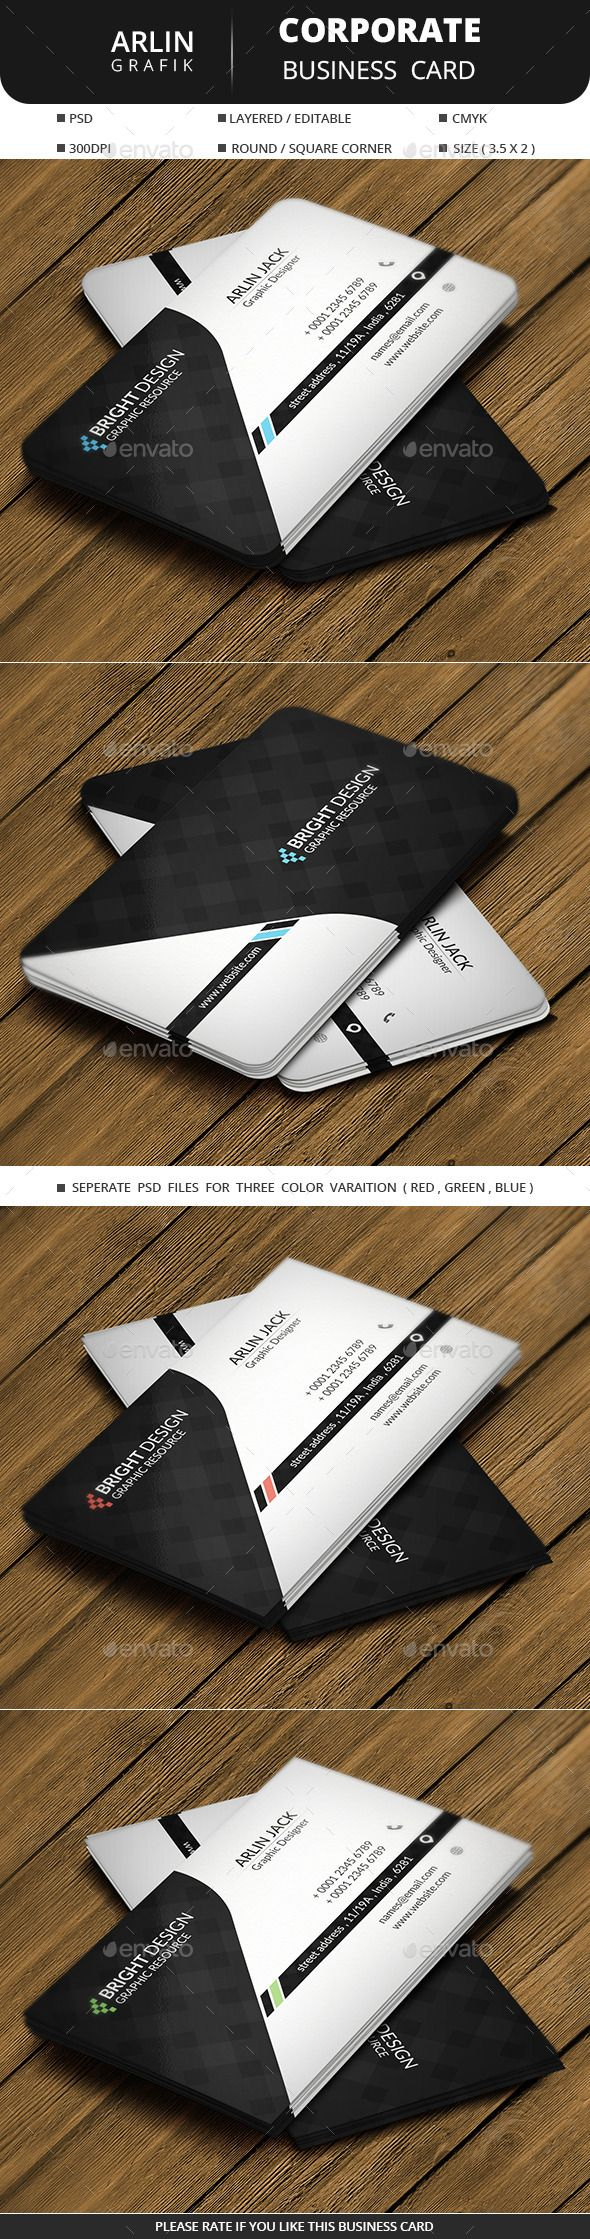 Corporate Business Card  - Corporate Business Card Template PSD. Download here: http://graphicriver.net/item/corporate-business-card-/12159824?s_rank=1792&ref=yinkira